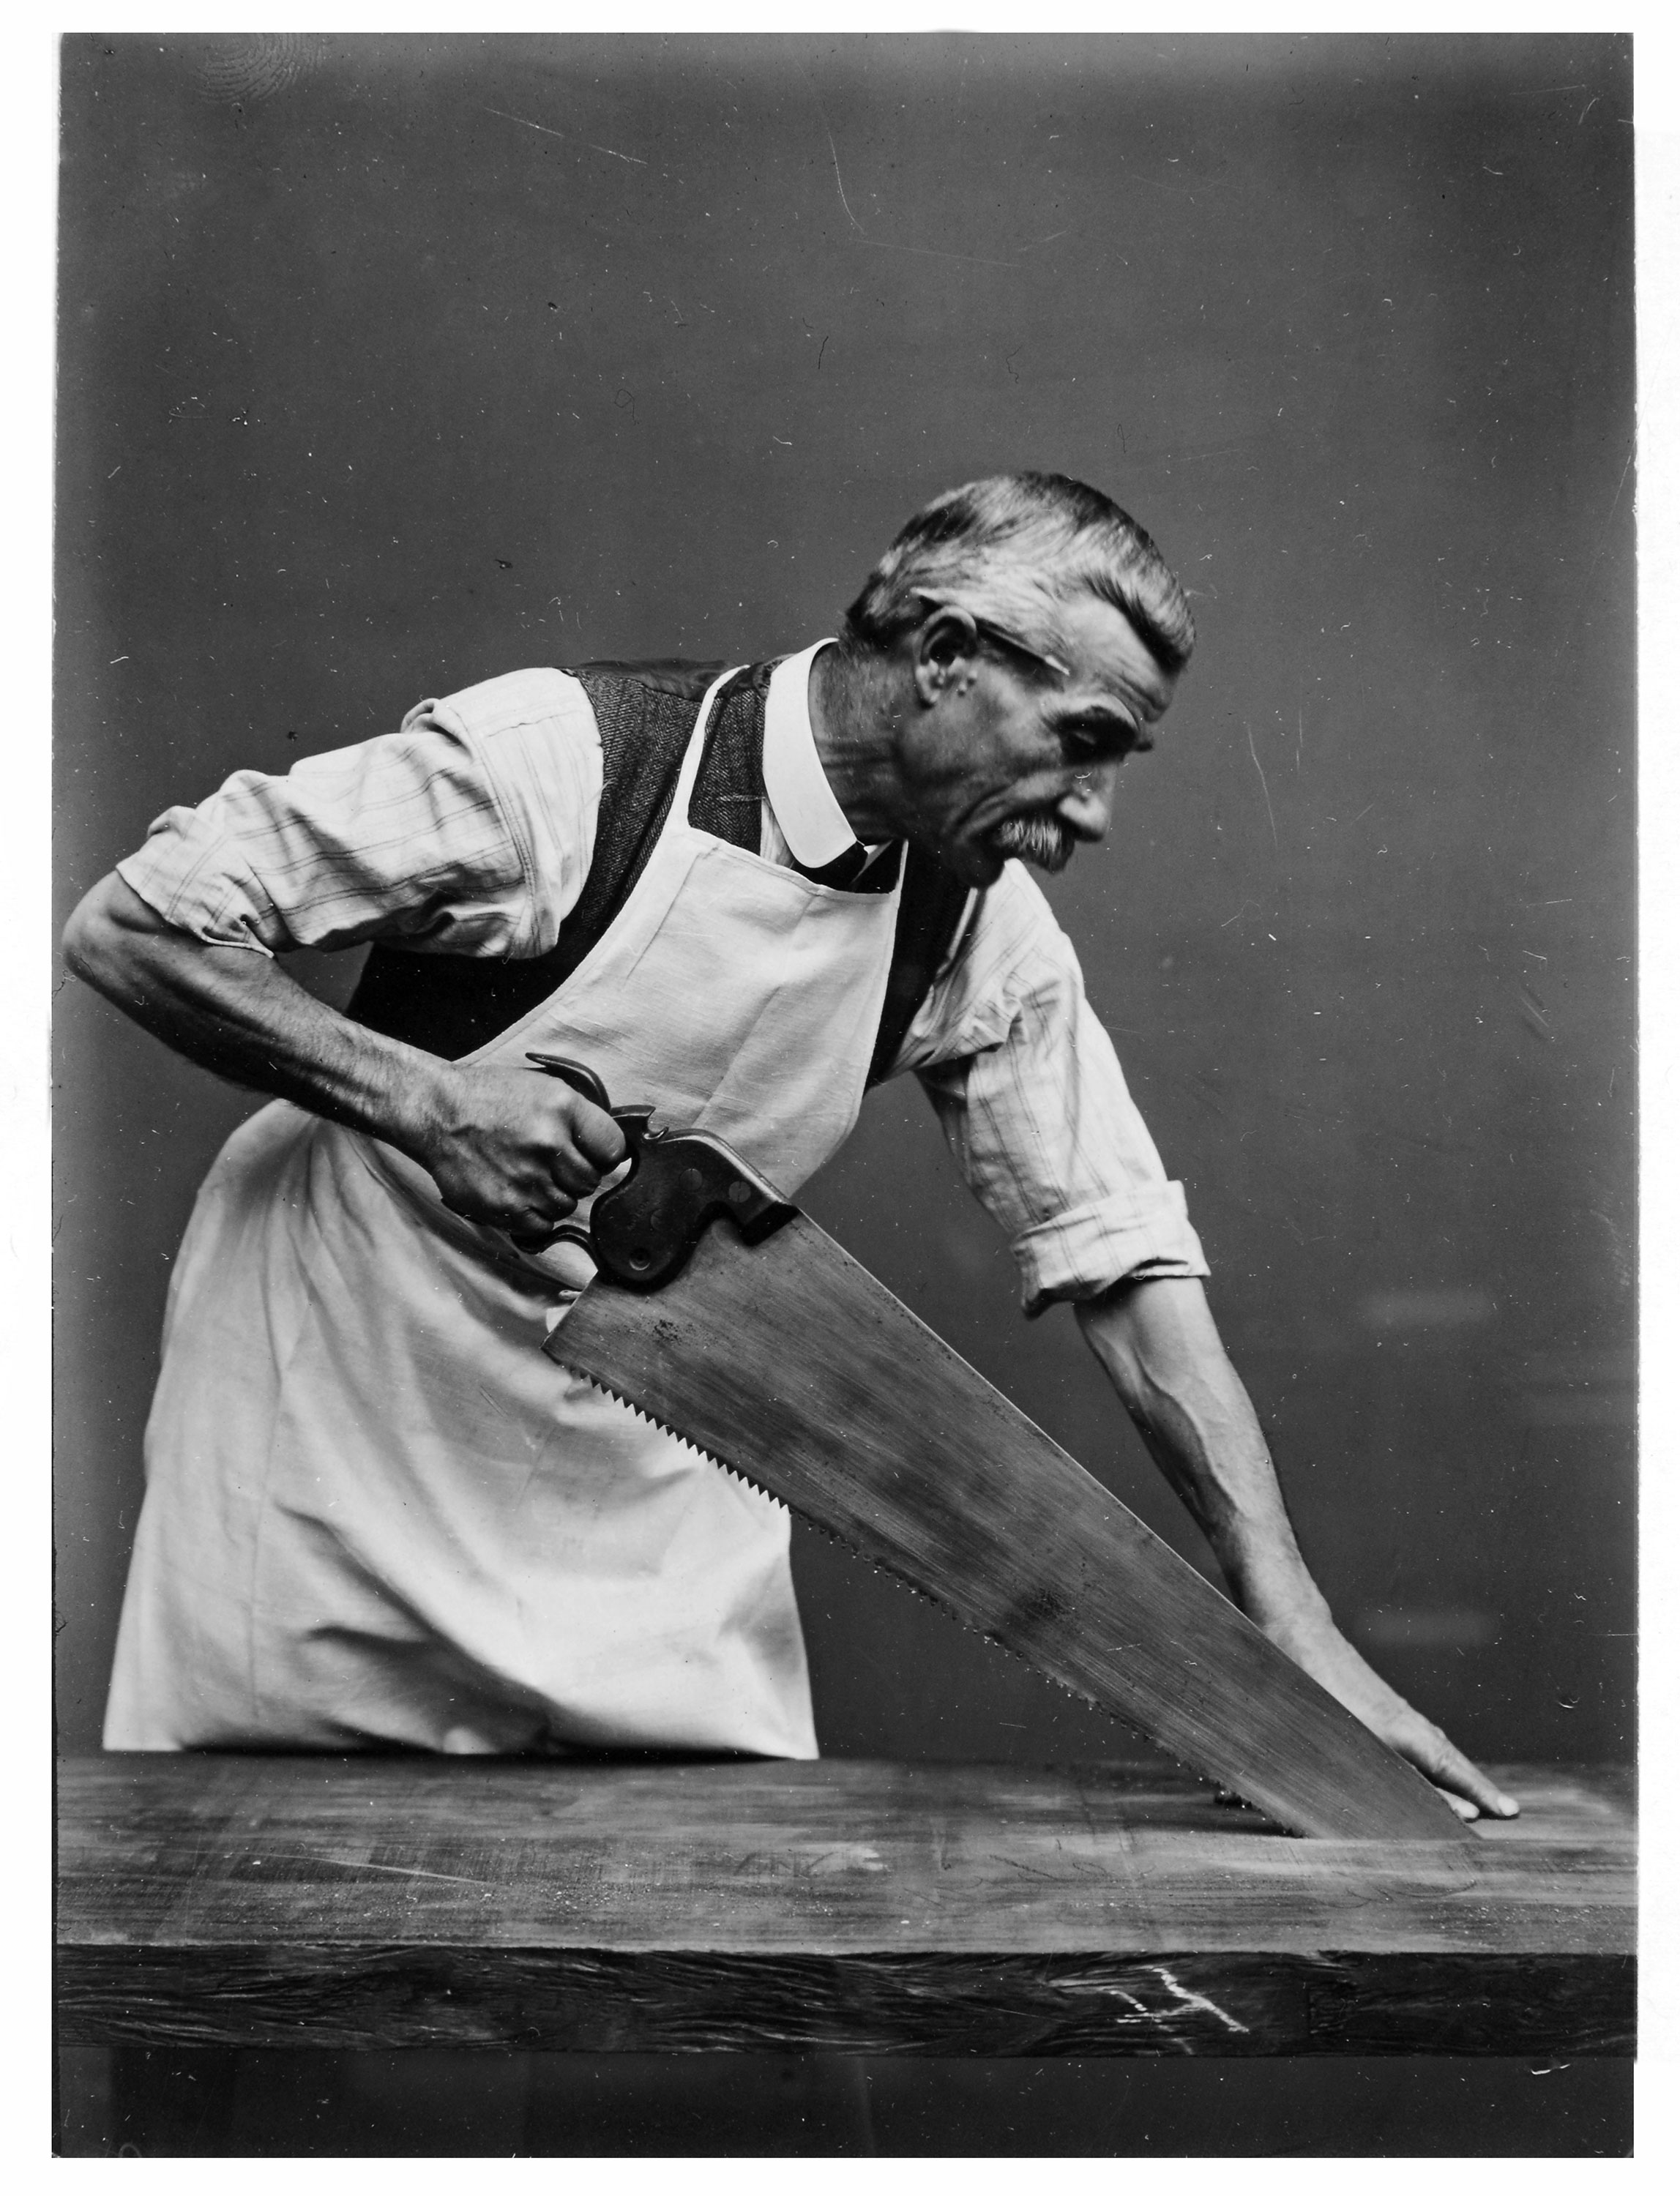 A photograph of a man using a handsaw to cut a piece of wood